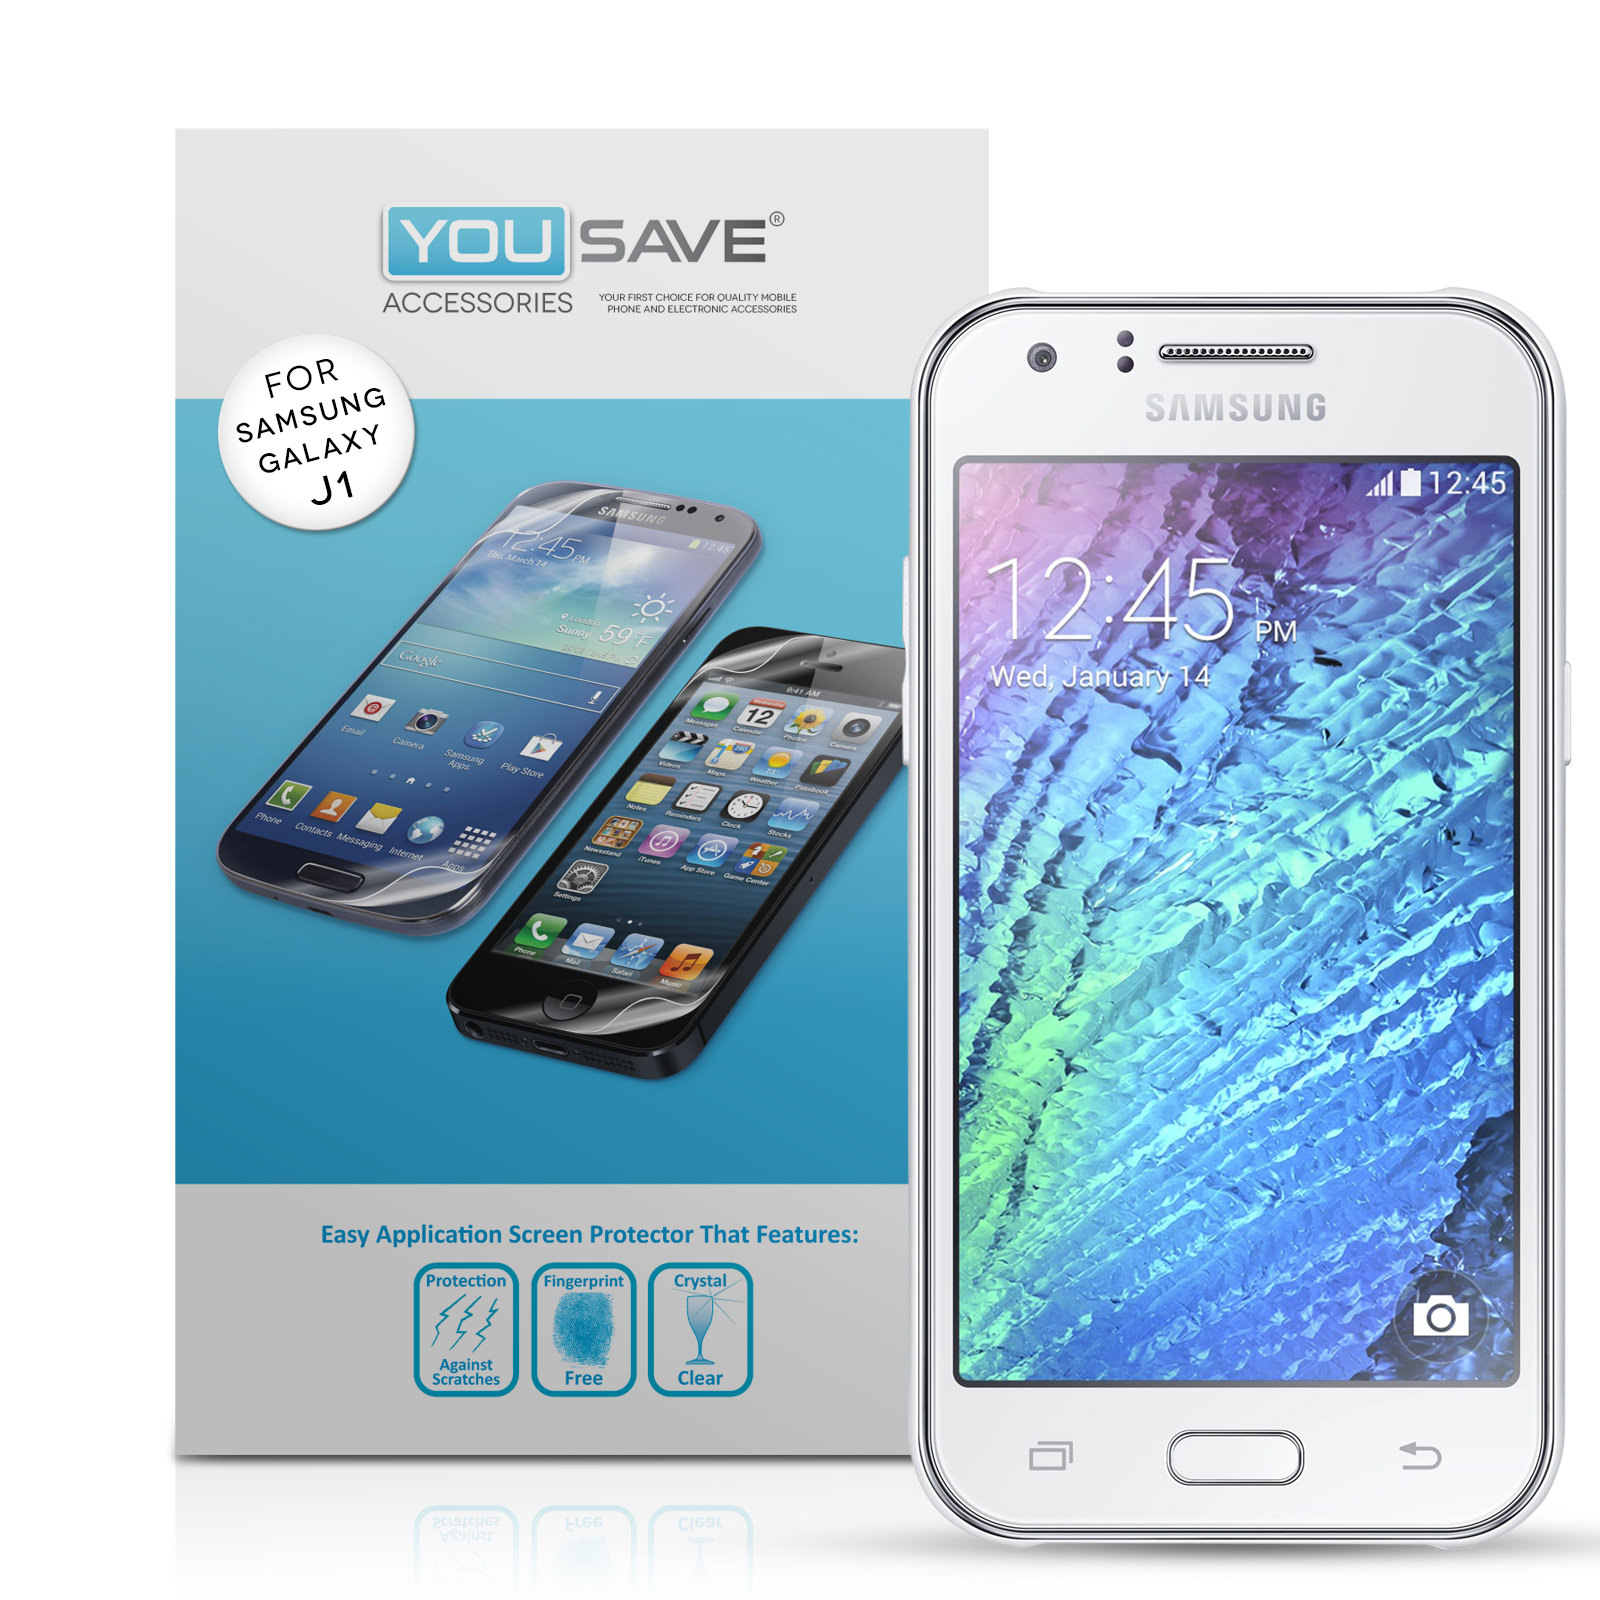 Yousave Accessories Samsung Galaxy J1 (2016) Screen Protectors x5